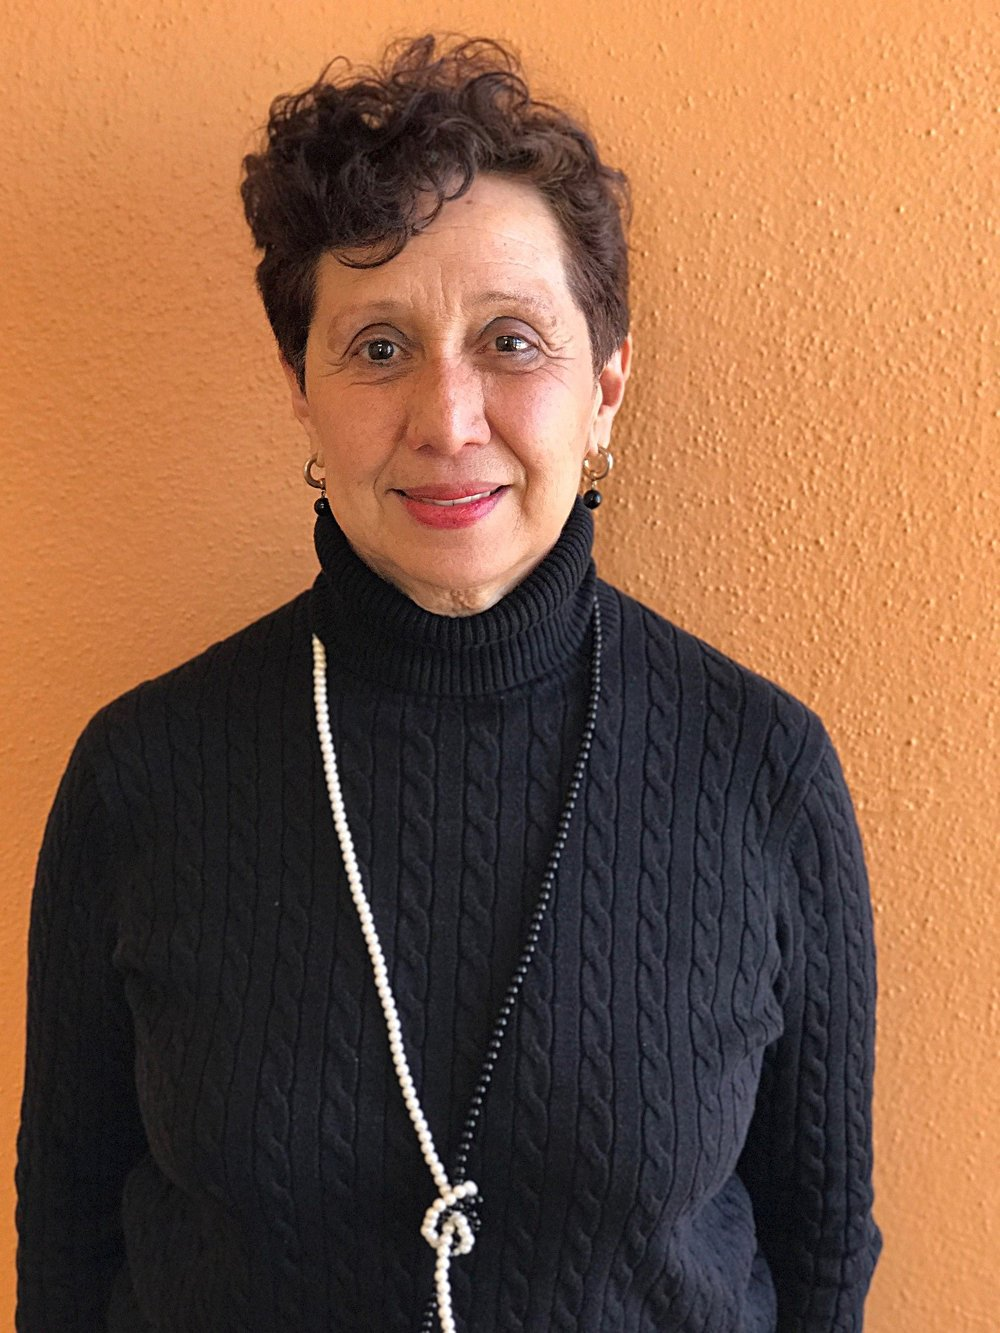 Mercedes Martinez, MPH, CHES Study Coordinator  - Mercedes received her both her BS and MPH from San Jose University. She is the Study coordinator for both the Healthy Start and the Exploring Perinatal Outcomes in Children (EPOCH 2) studies. Mercedes has worked in the health field for over 36 years and in research for 15 years. She is passionate about exploring how lifestyles during pregnancy influence a child's later outcomes in life, specifically risk for developing Diabetes and Heart Disease.